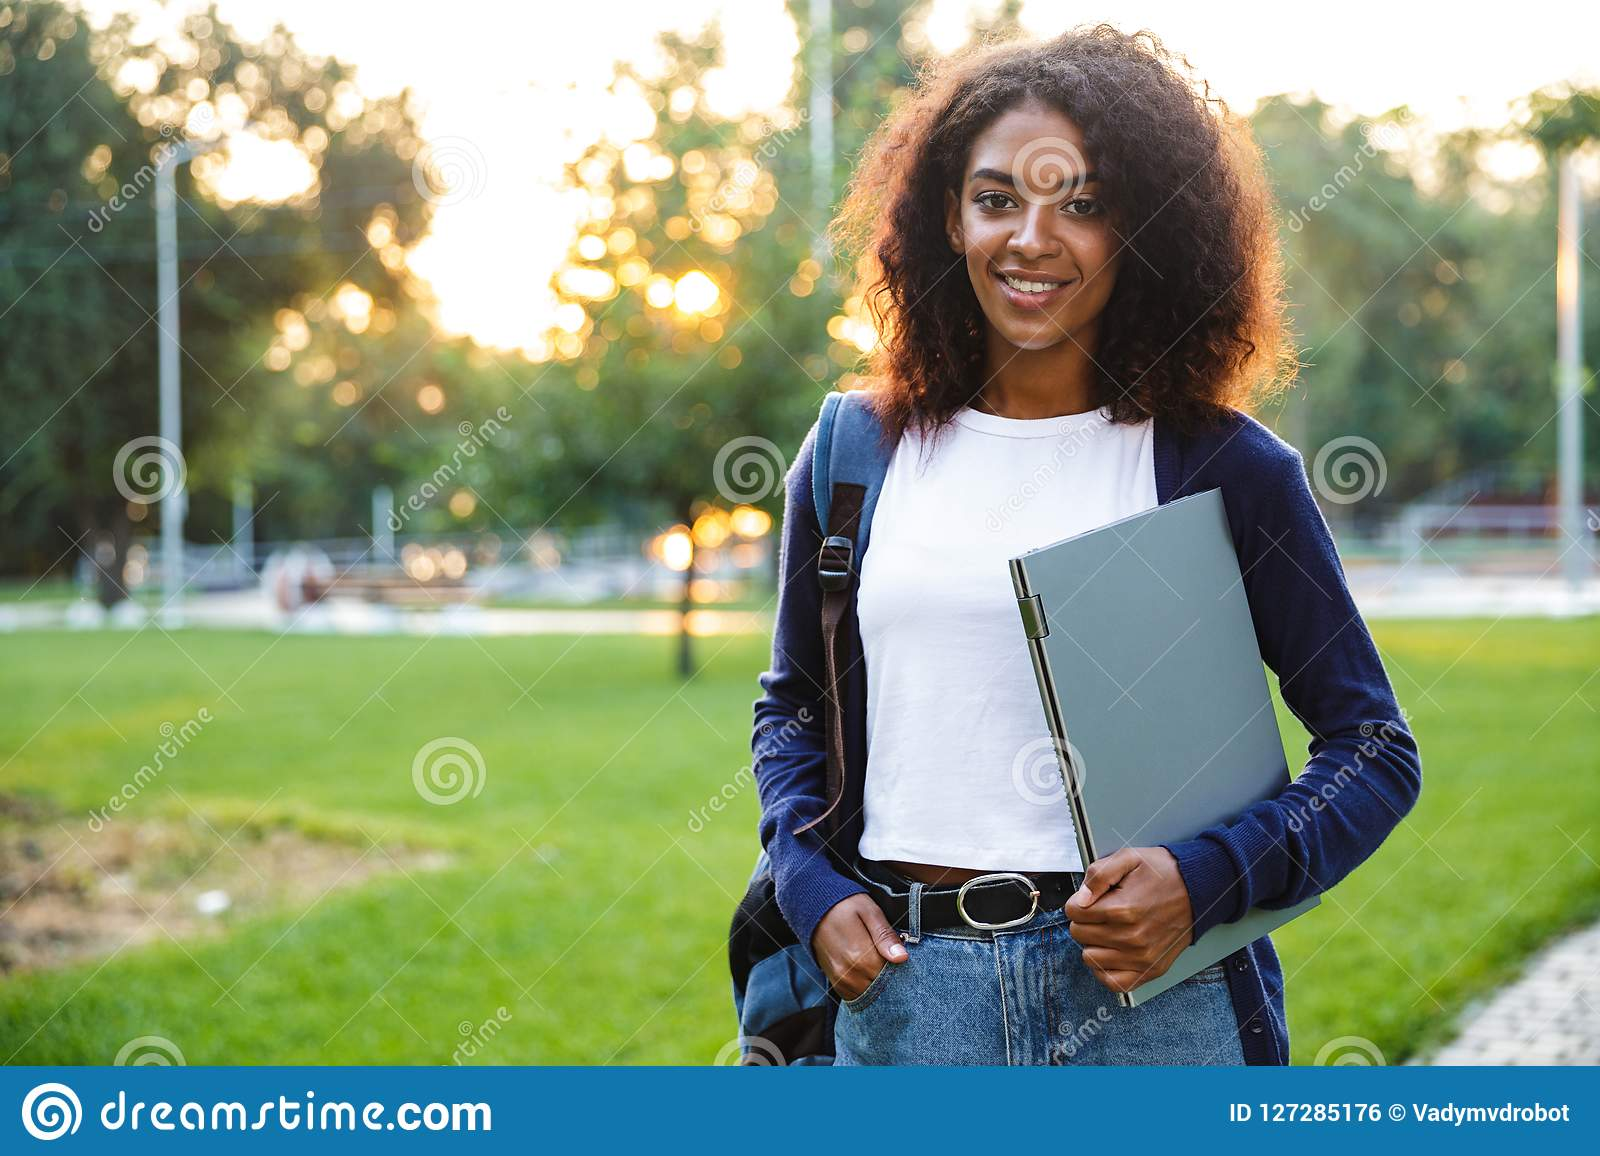 Beautiful african woman student walking in the park holding laptop computer.